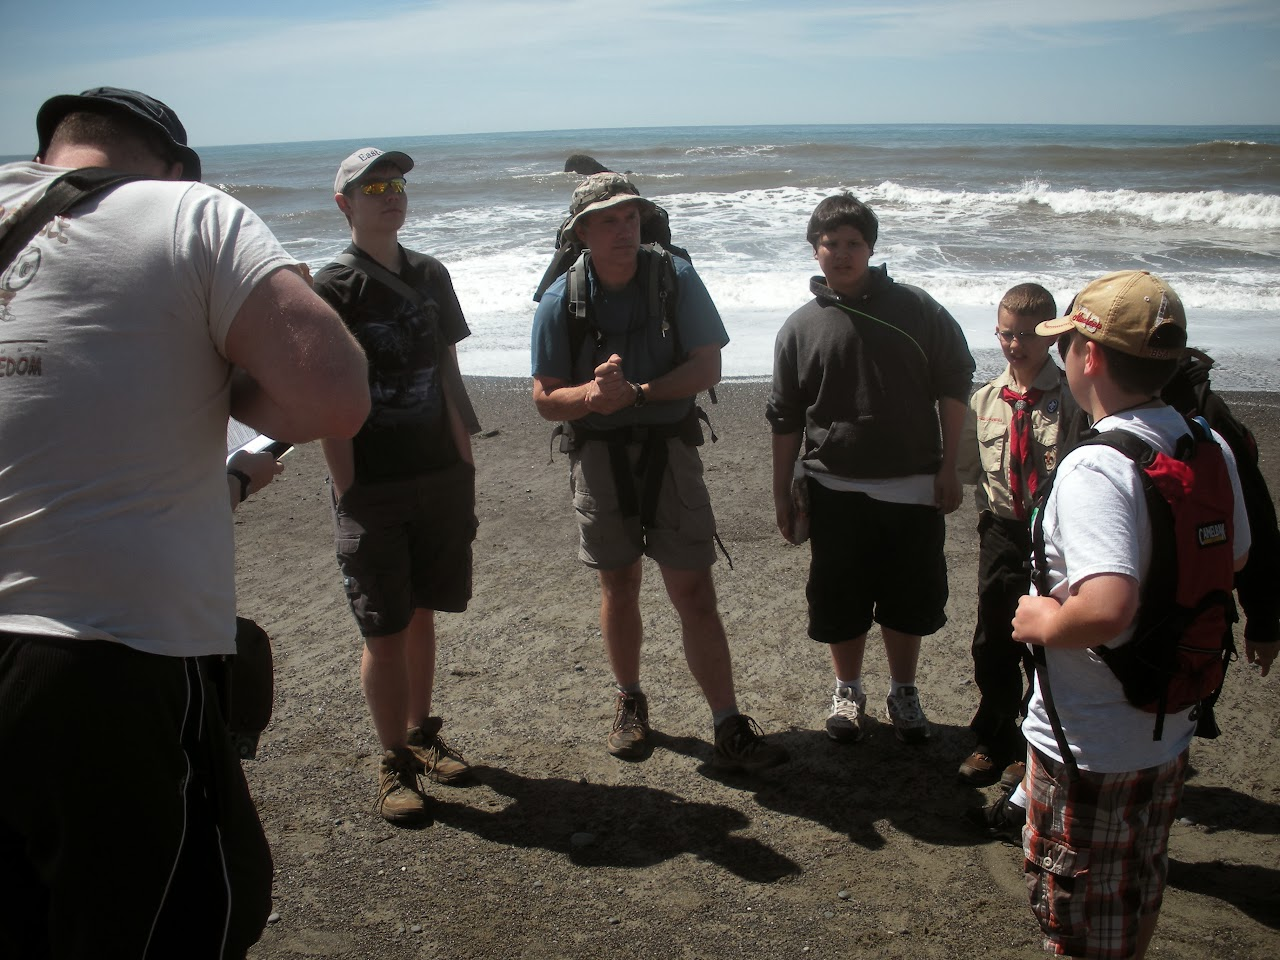 Rialto Beach May 2013 - DSCN0193.JPG